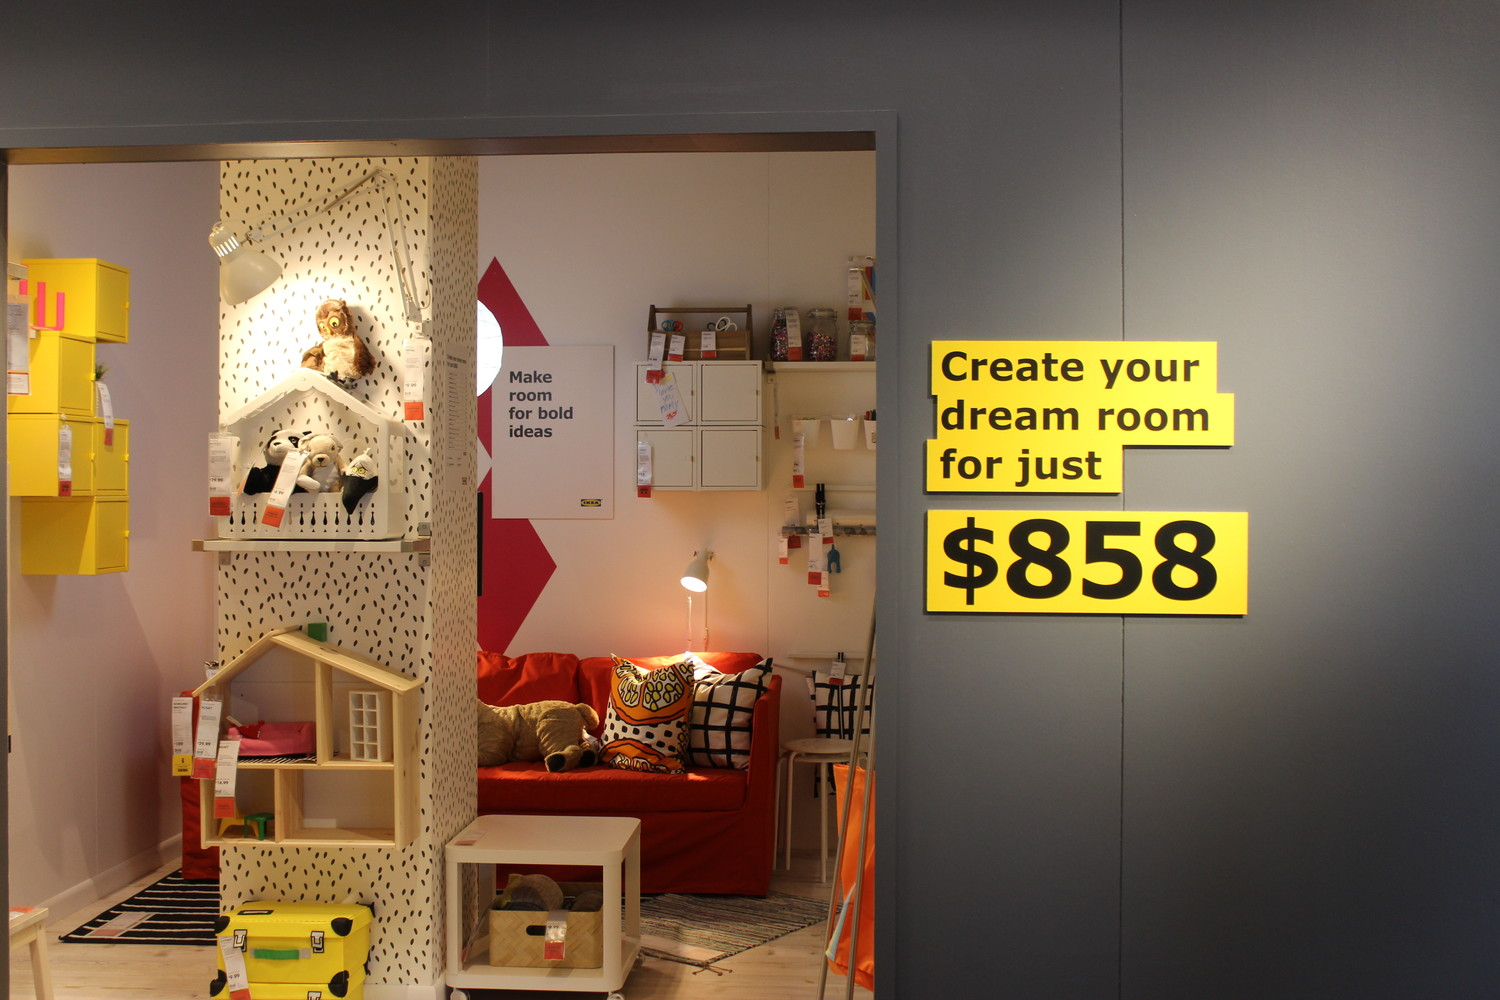 IKEA in Jacksonville has 50 specially designed room displays, which include all the finishings and total cost to create an identical space.